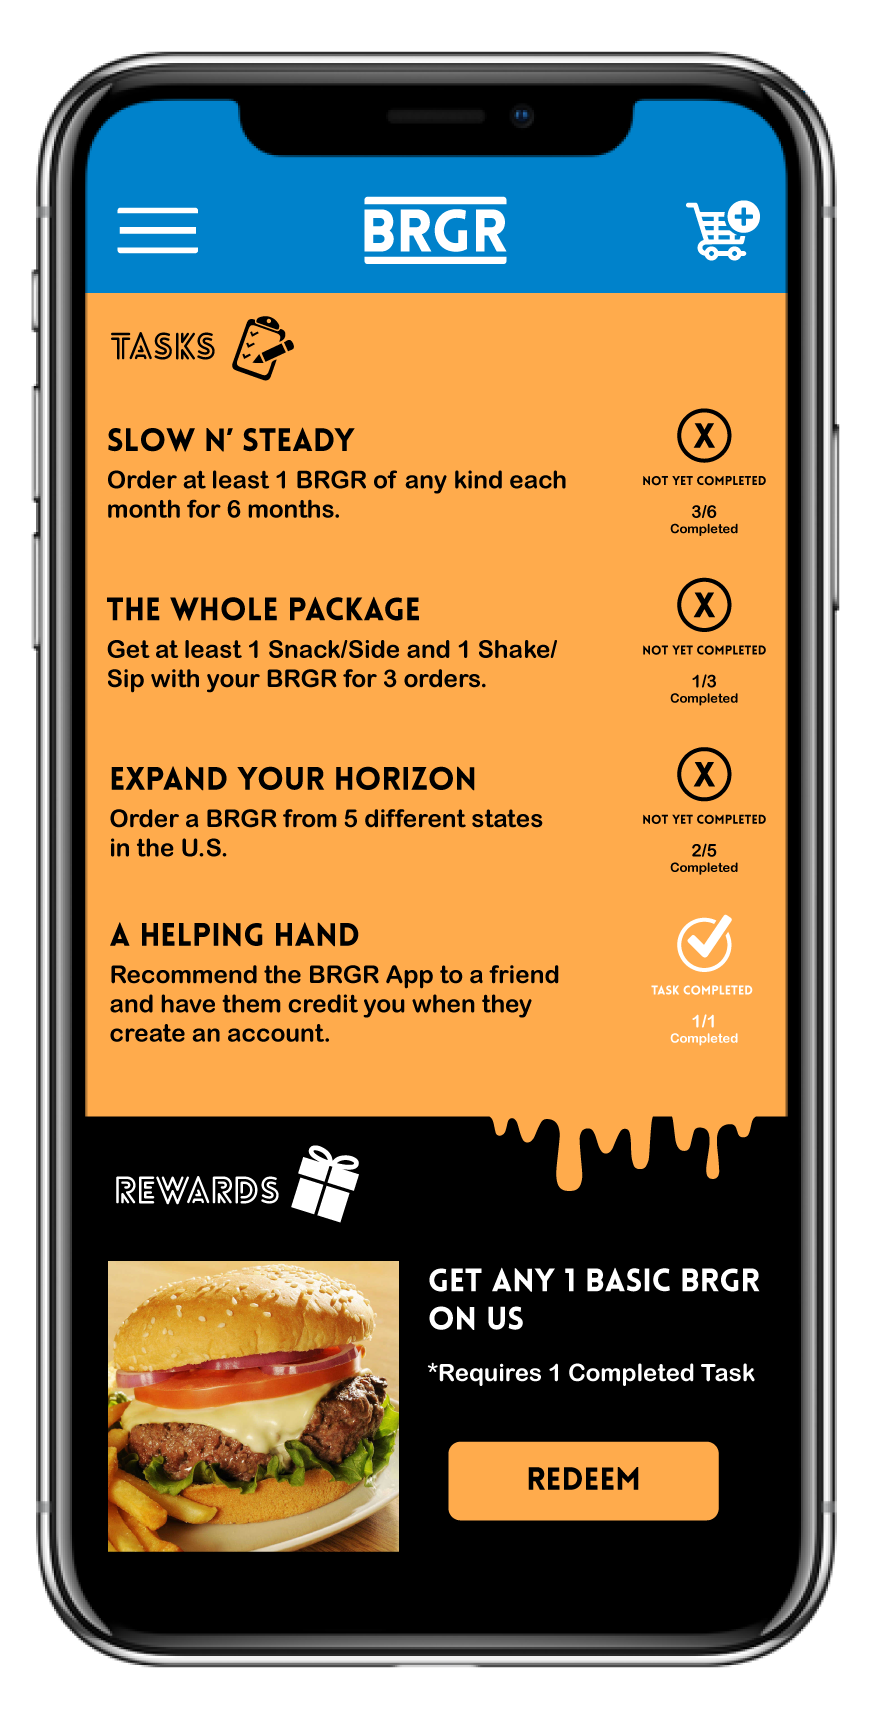 - Tasks and Rewards is a fun way to get users more involved and creates a fresh spin on the simple act of ordering a burger.Complete a Task such as The Whole Package which involves getting a complete order (burger, drink and side) for 3 orders. Save up your completed tasks in exchange for great rewards like a free meal or BRGR merch!